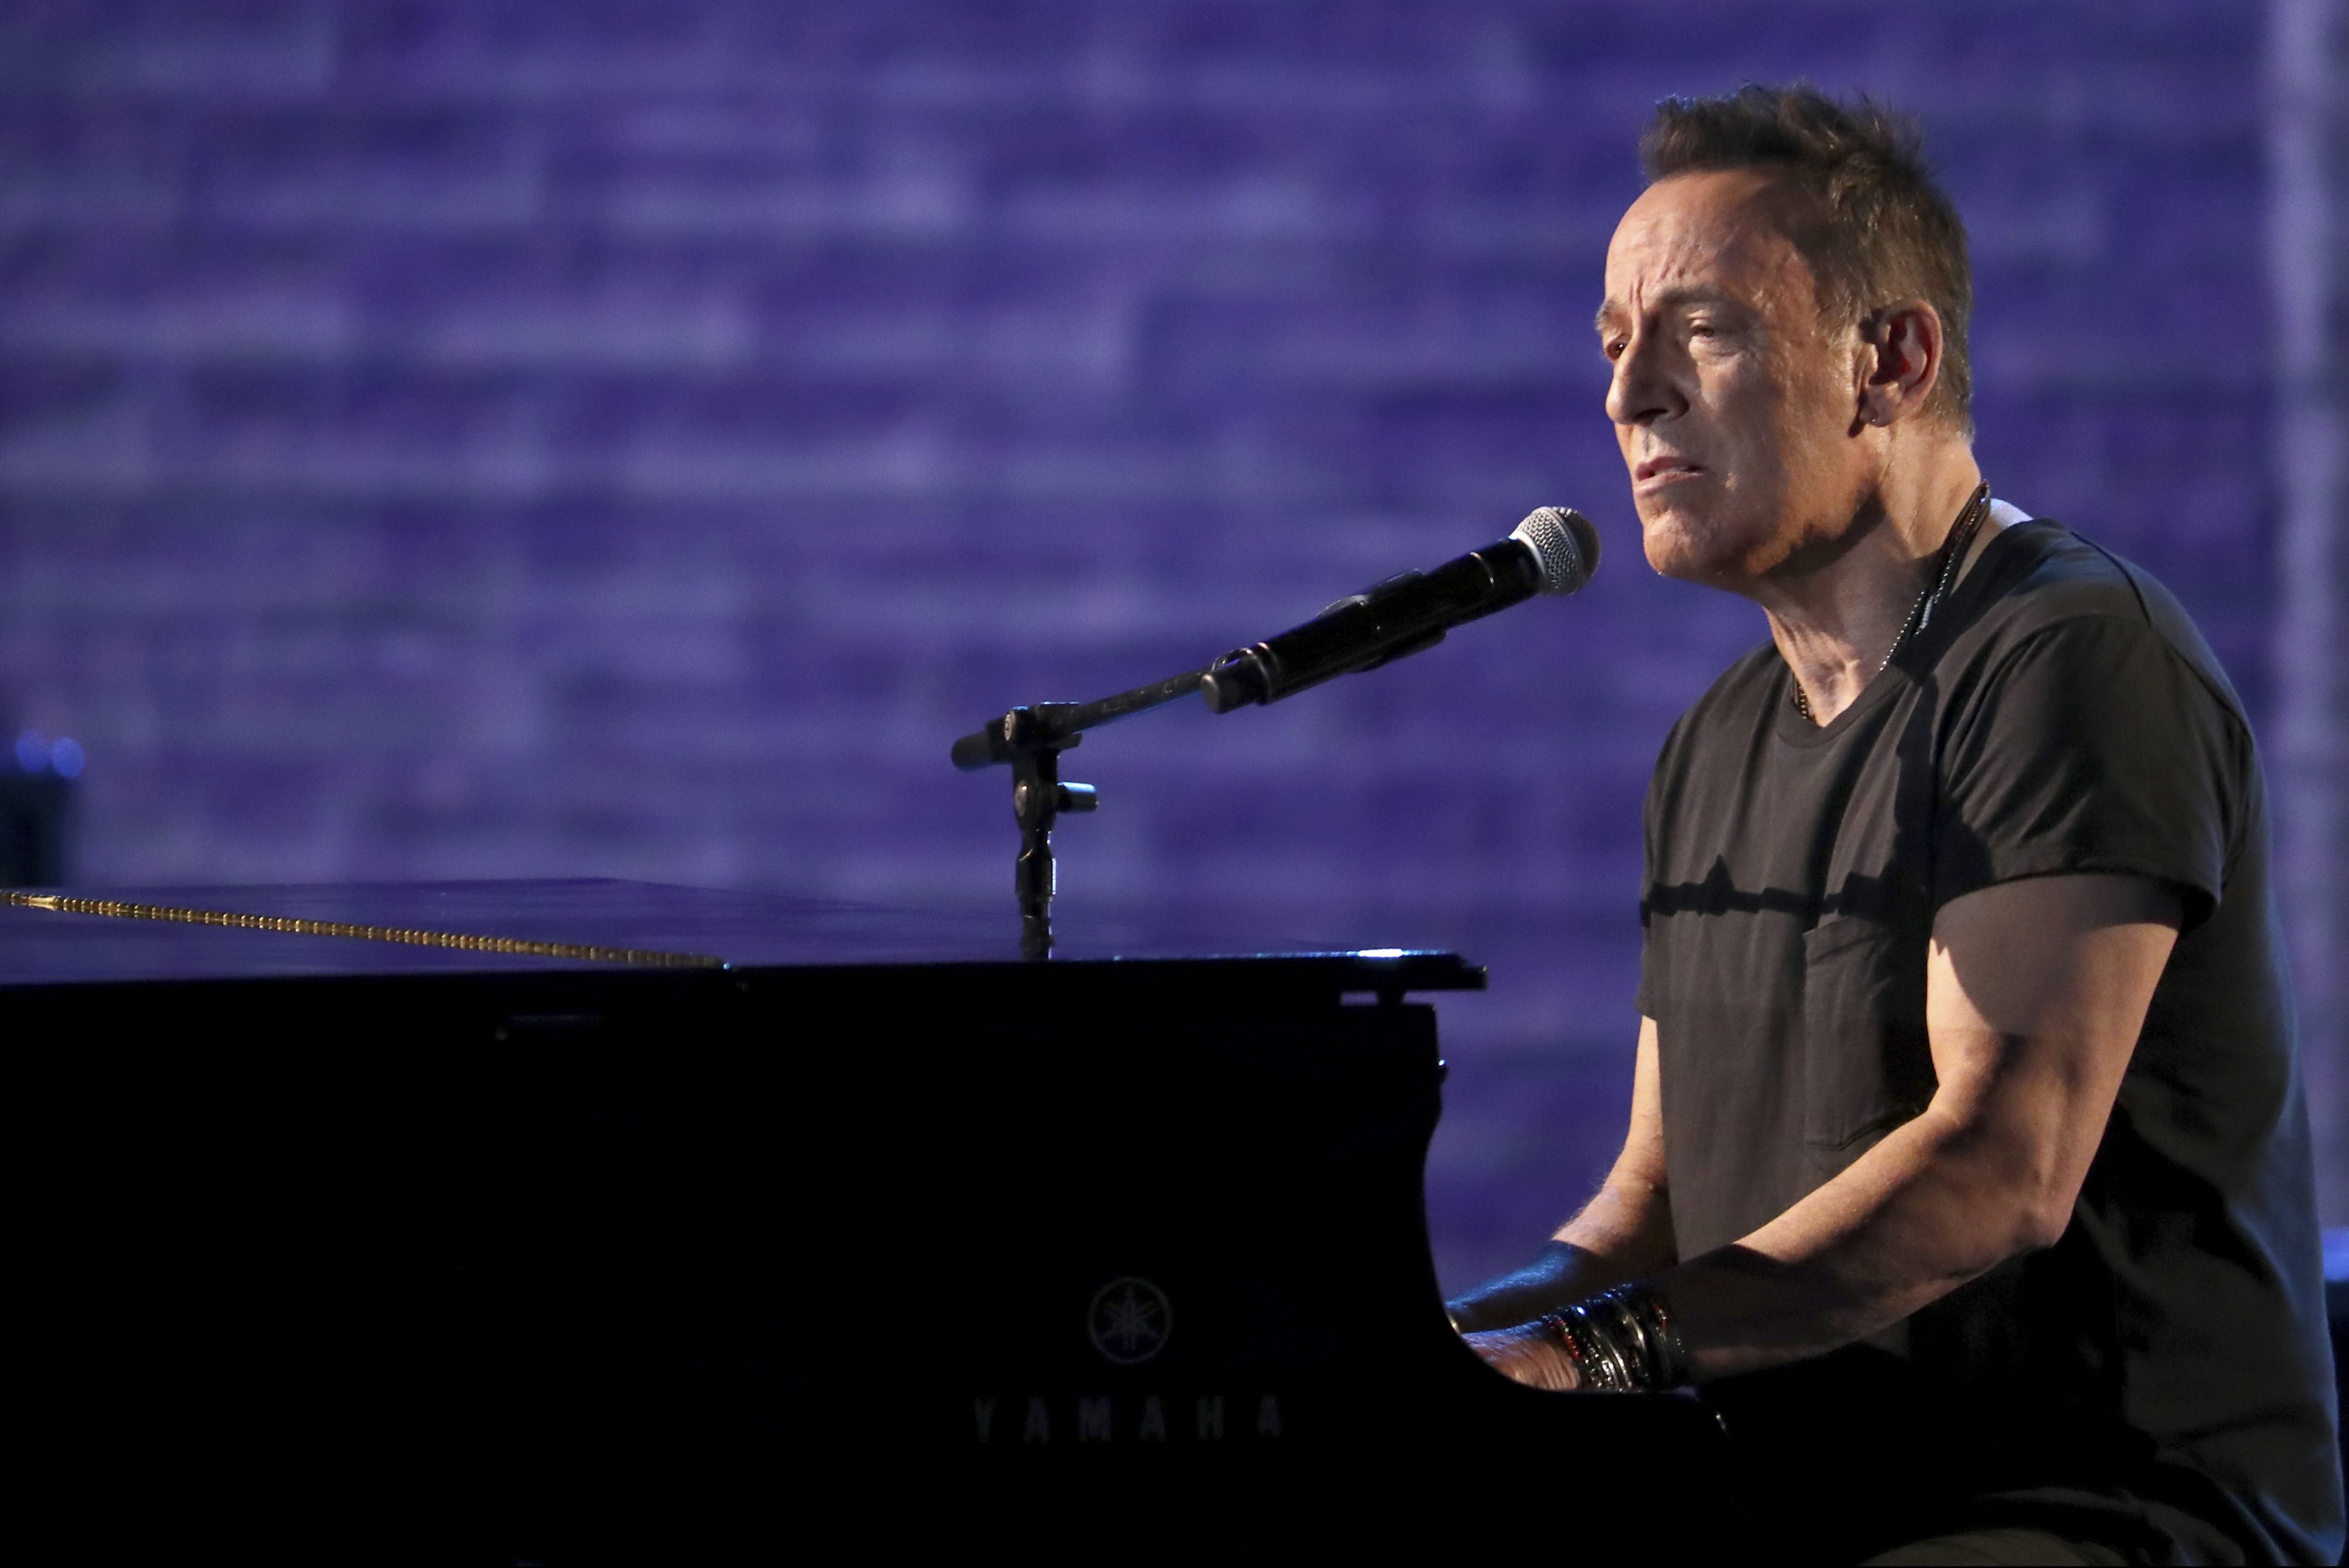 Bruce Springsteen's Tony Awards performance upset some